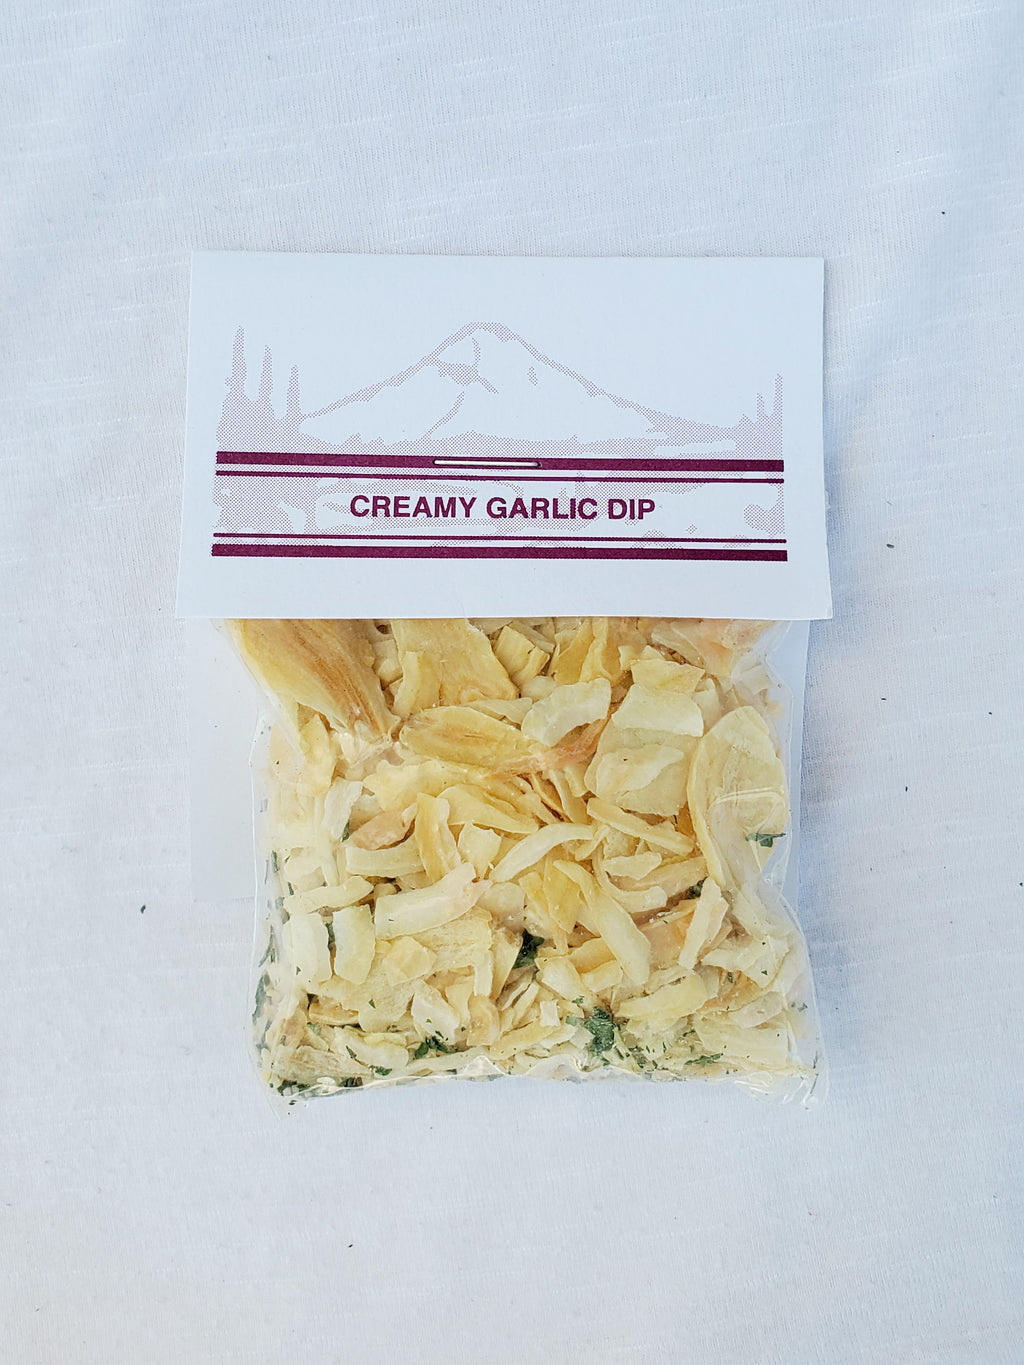 Northwest Spices Creamy Garlic Dip